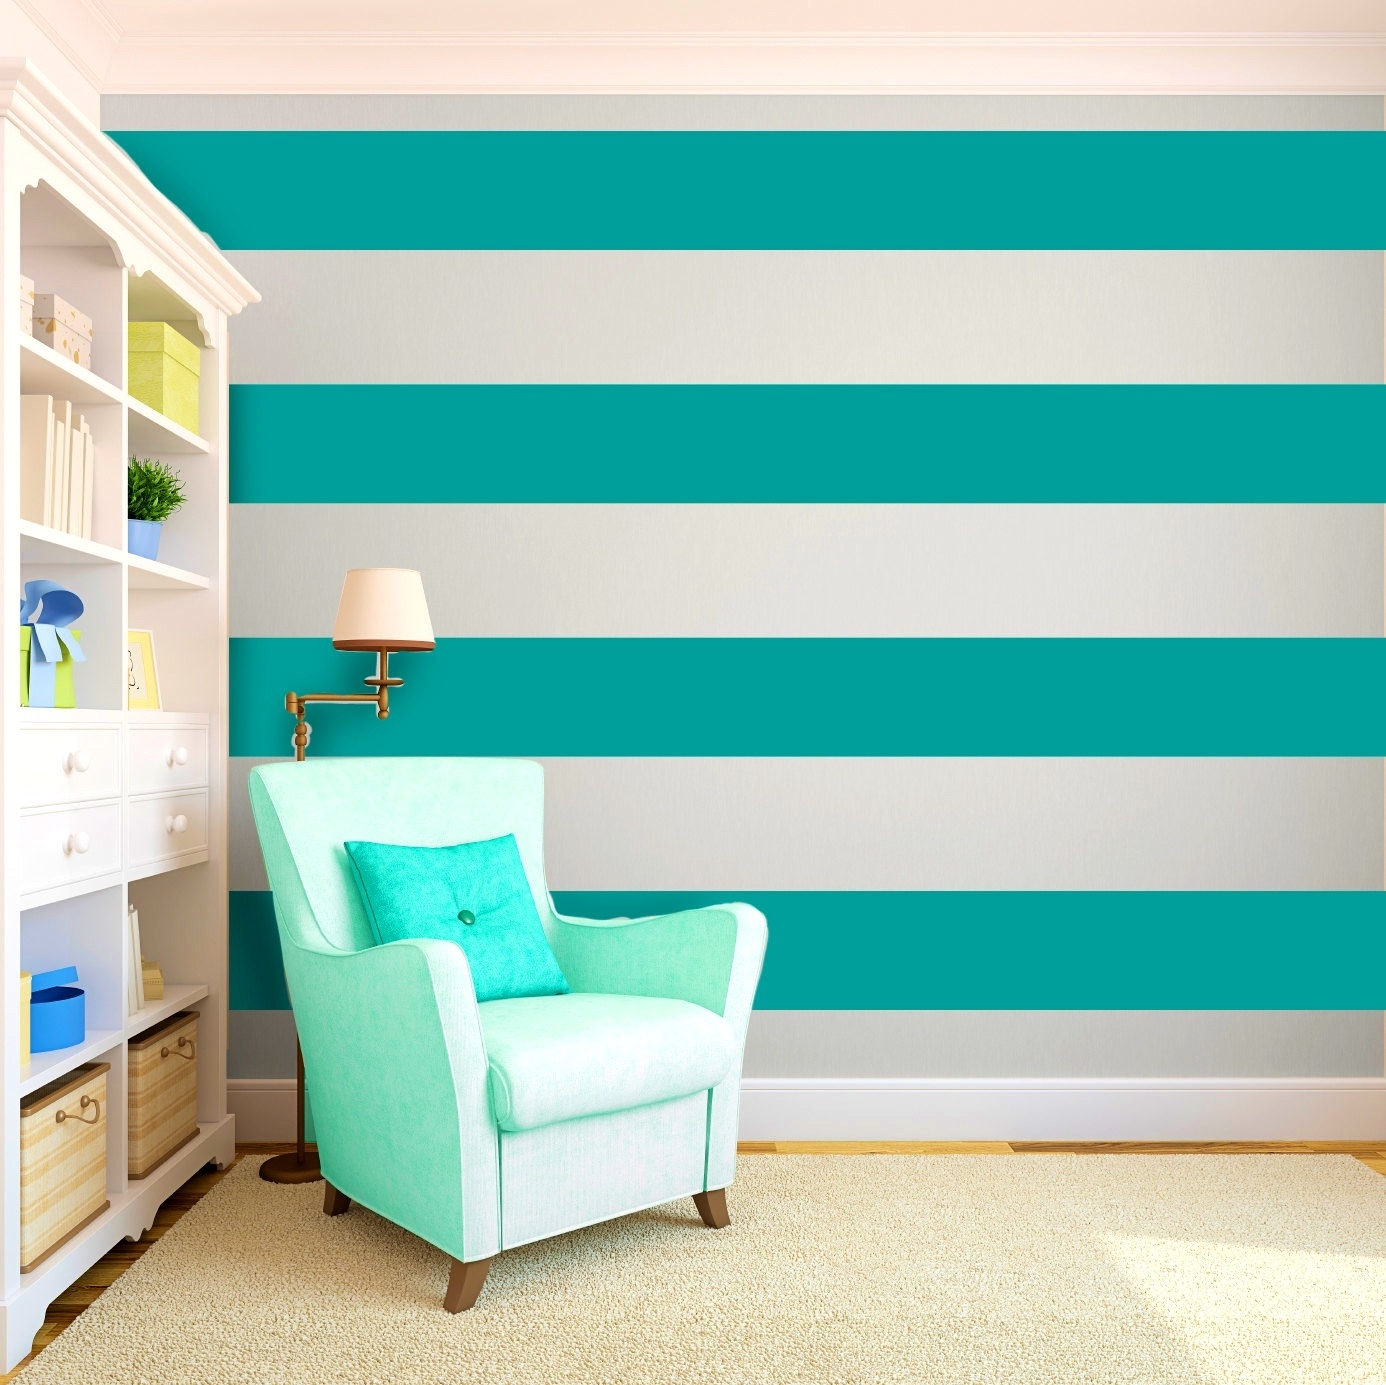 Bathroomappealing Cool Painting Ideas That Turn Walls And Ceilings Intended For Most Current Vertical Stripes Wall Accents (View 5 of 15)